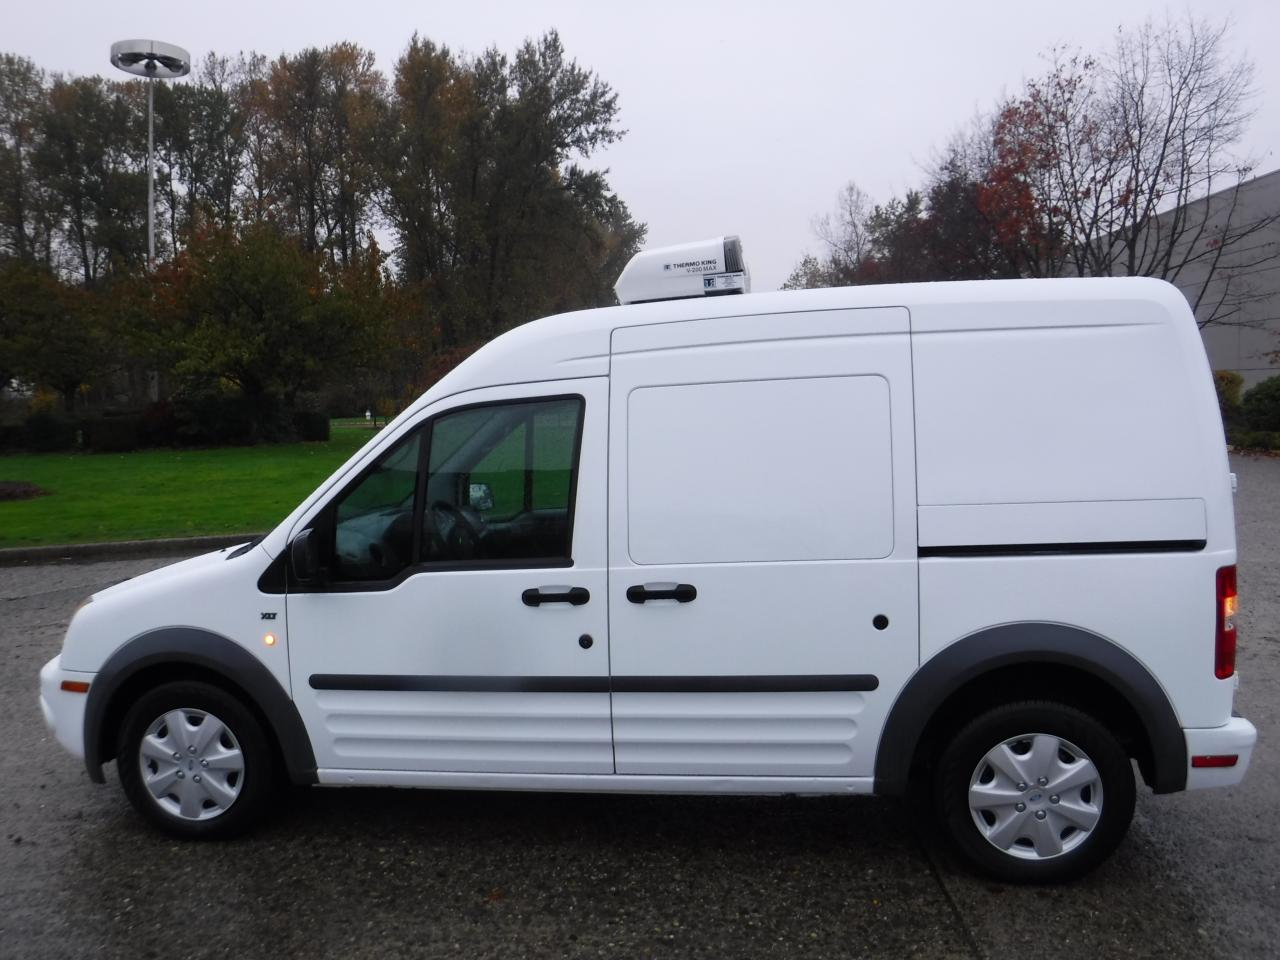 Used 2011 Ford Transit Connect Reefer XLT with Rear Door Glass Cargo Van  for Sale in Burnaby, British Columbia | Carpages.ca